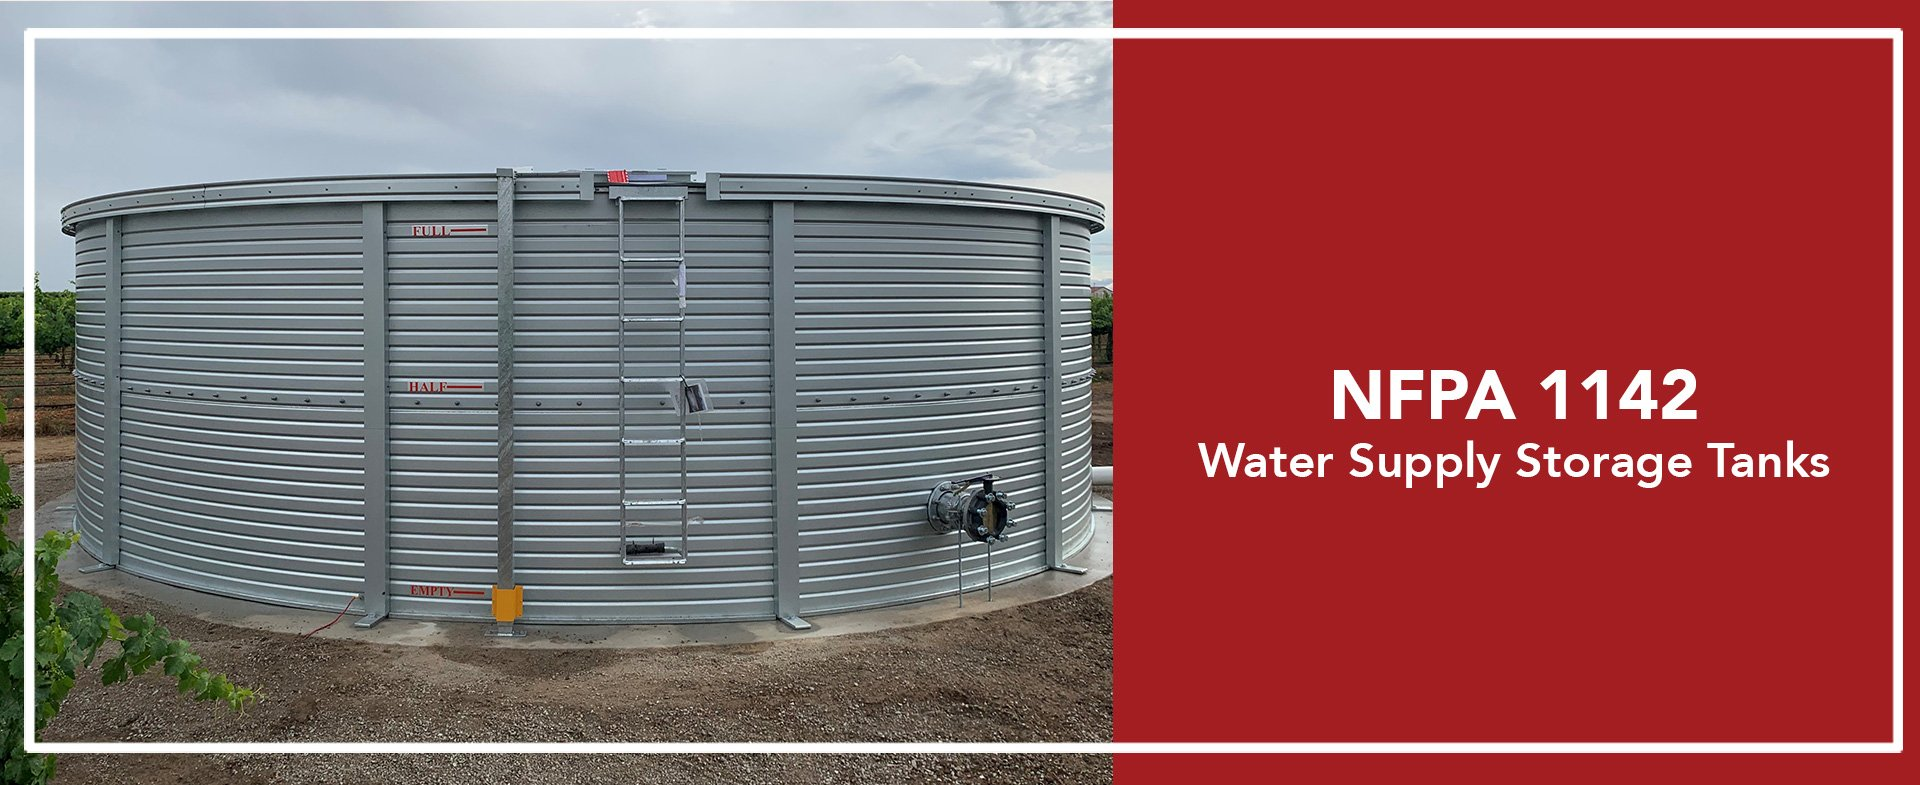 NFPA 1142 water supply tanks in California